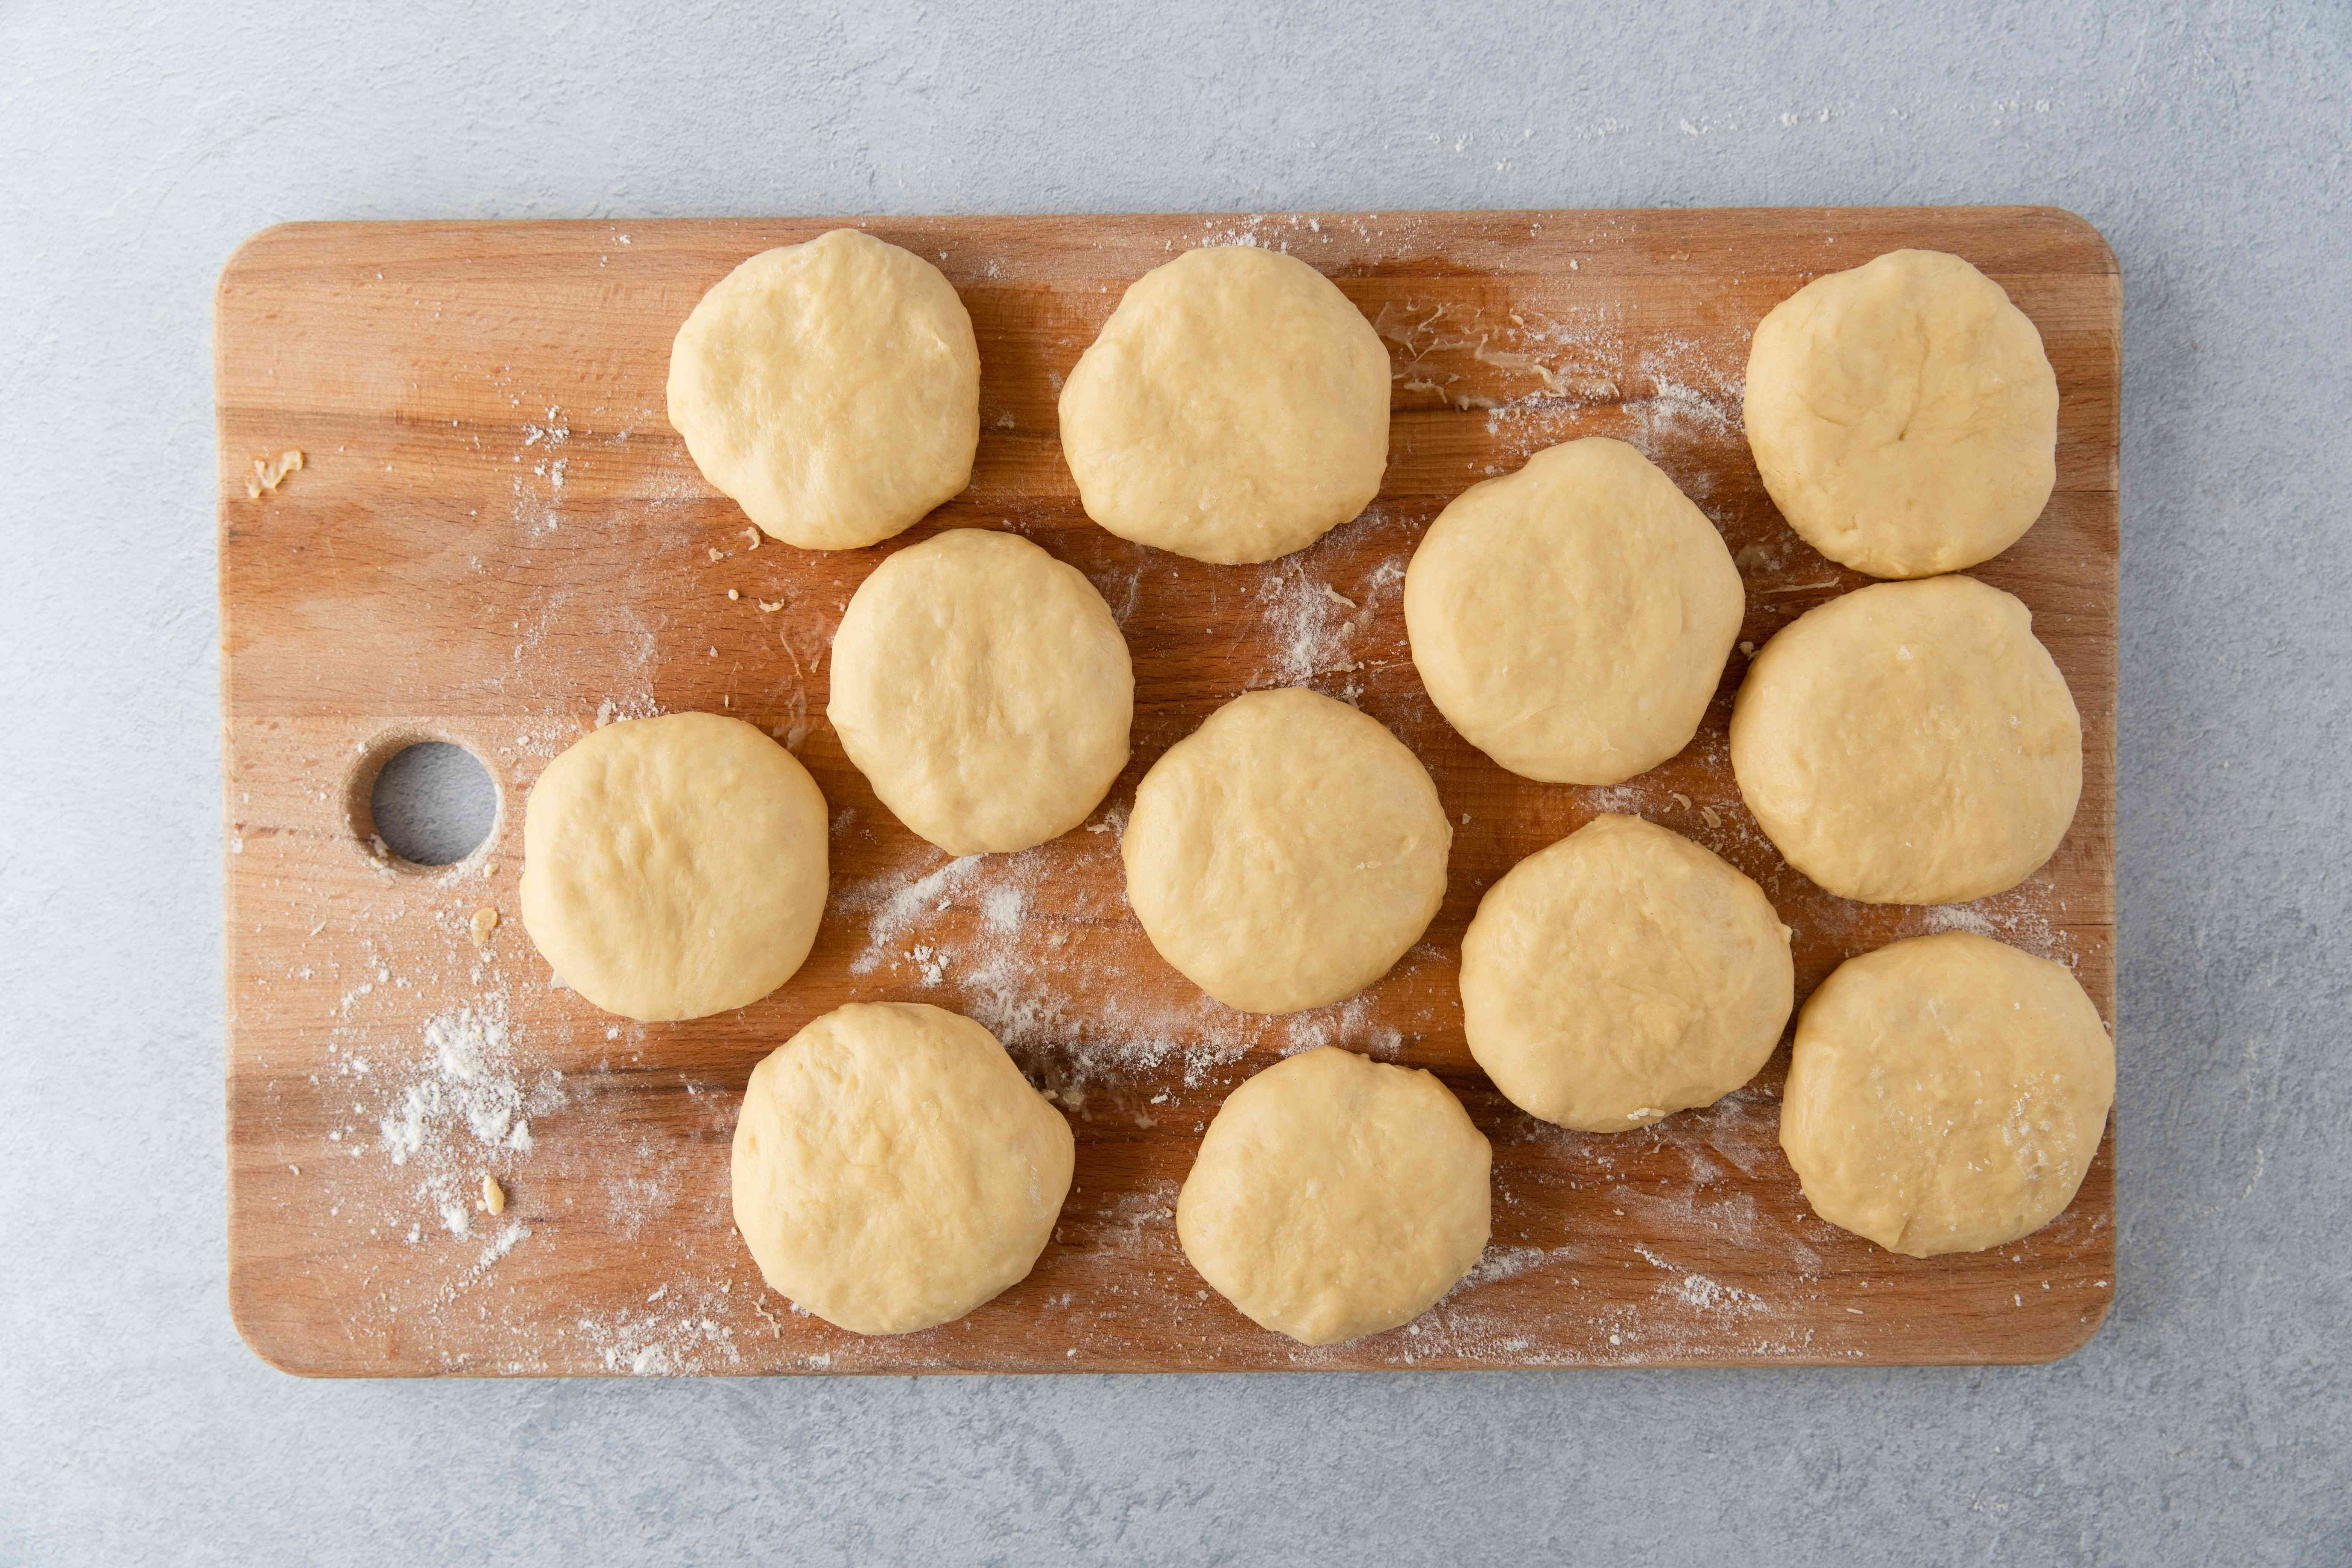 Dough balls shaped into thick disks on a wooden cutting board